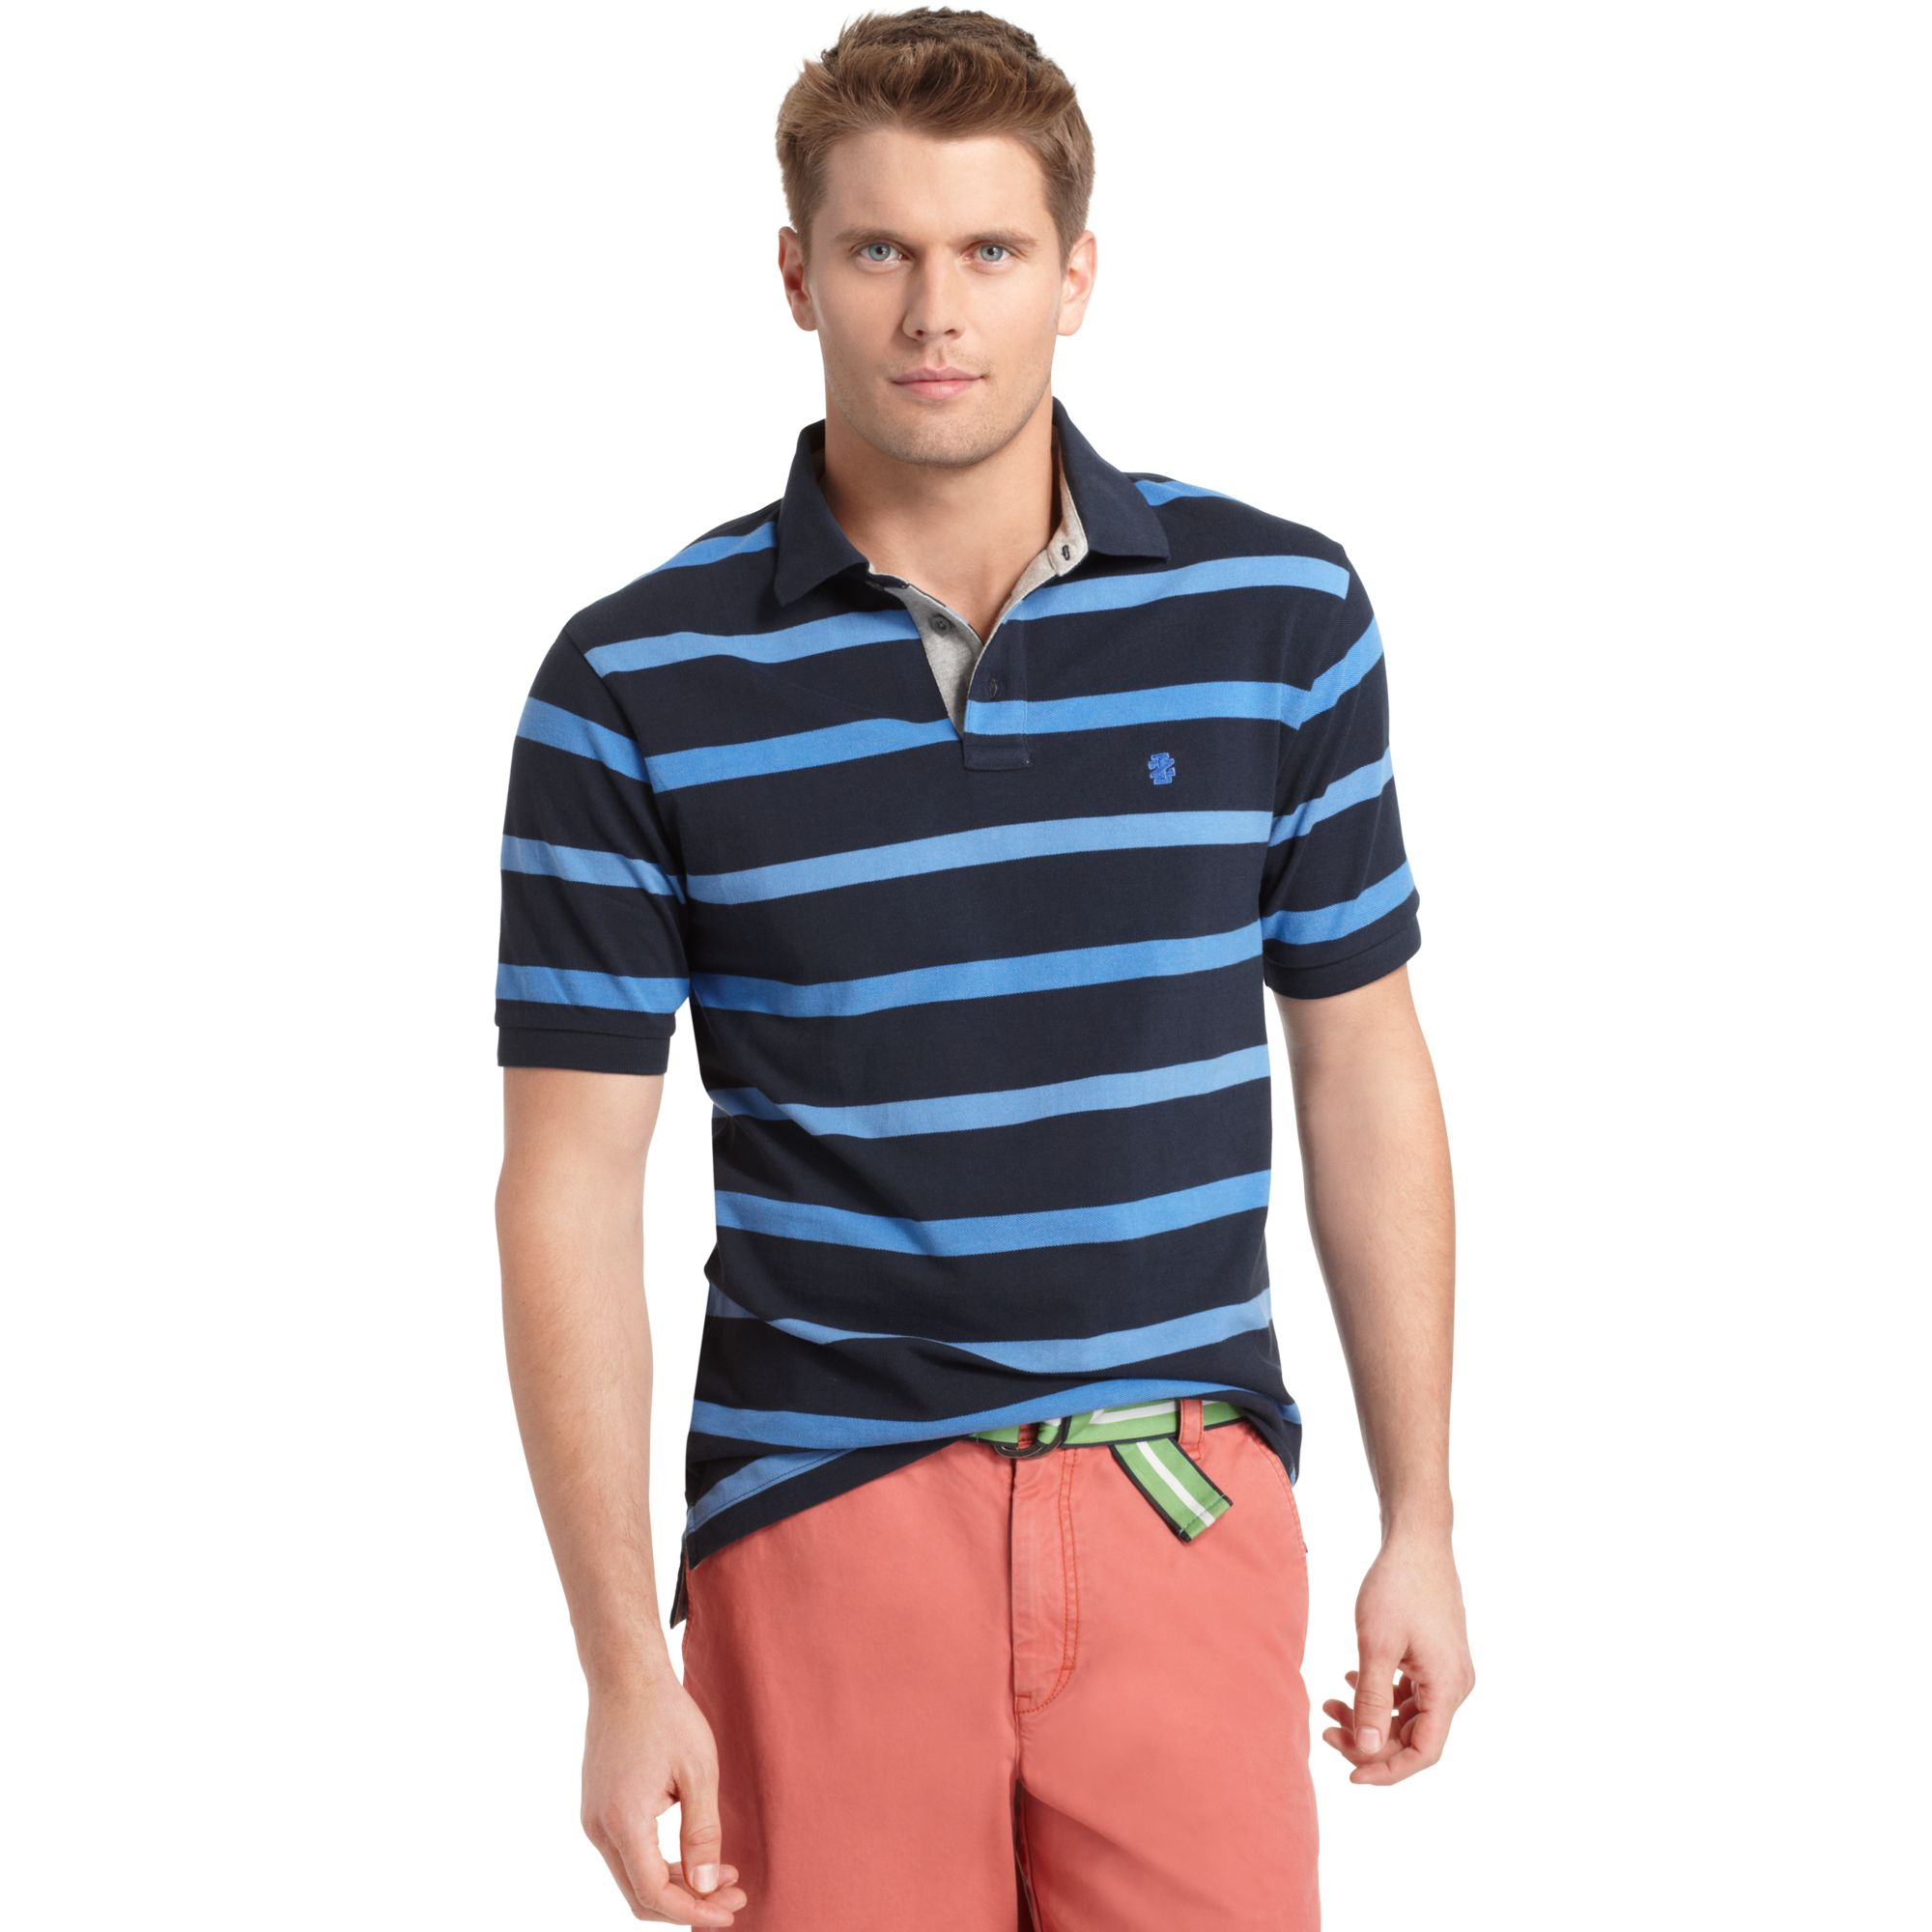 2d63be18f93 Izod Polo Shirts 100 Cotton